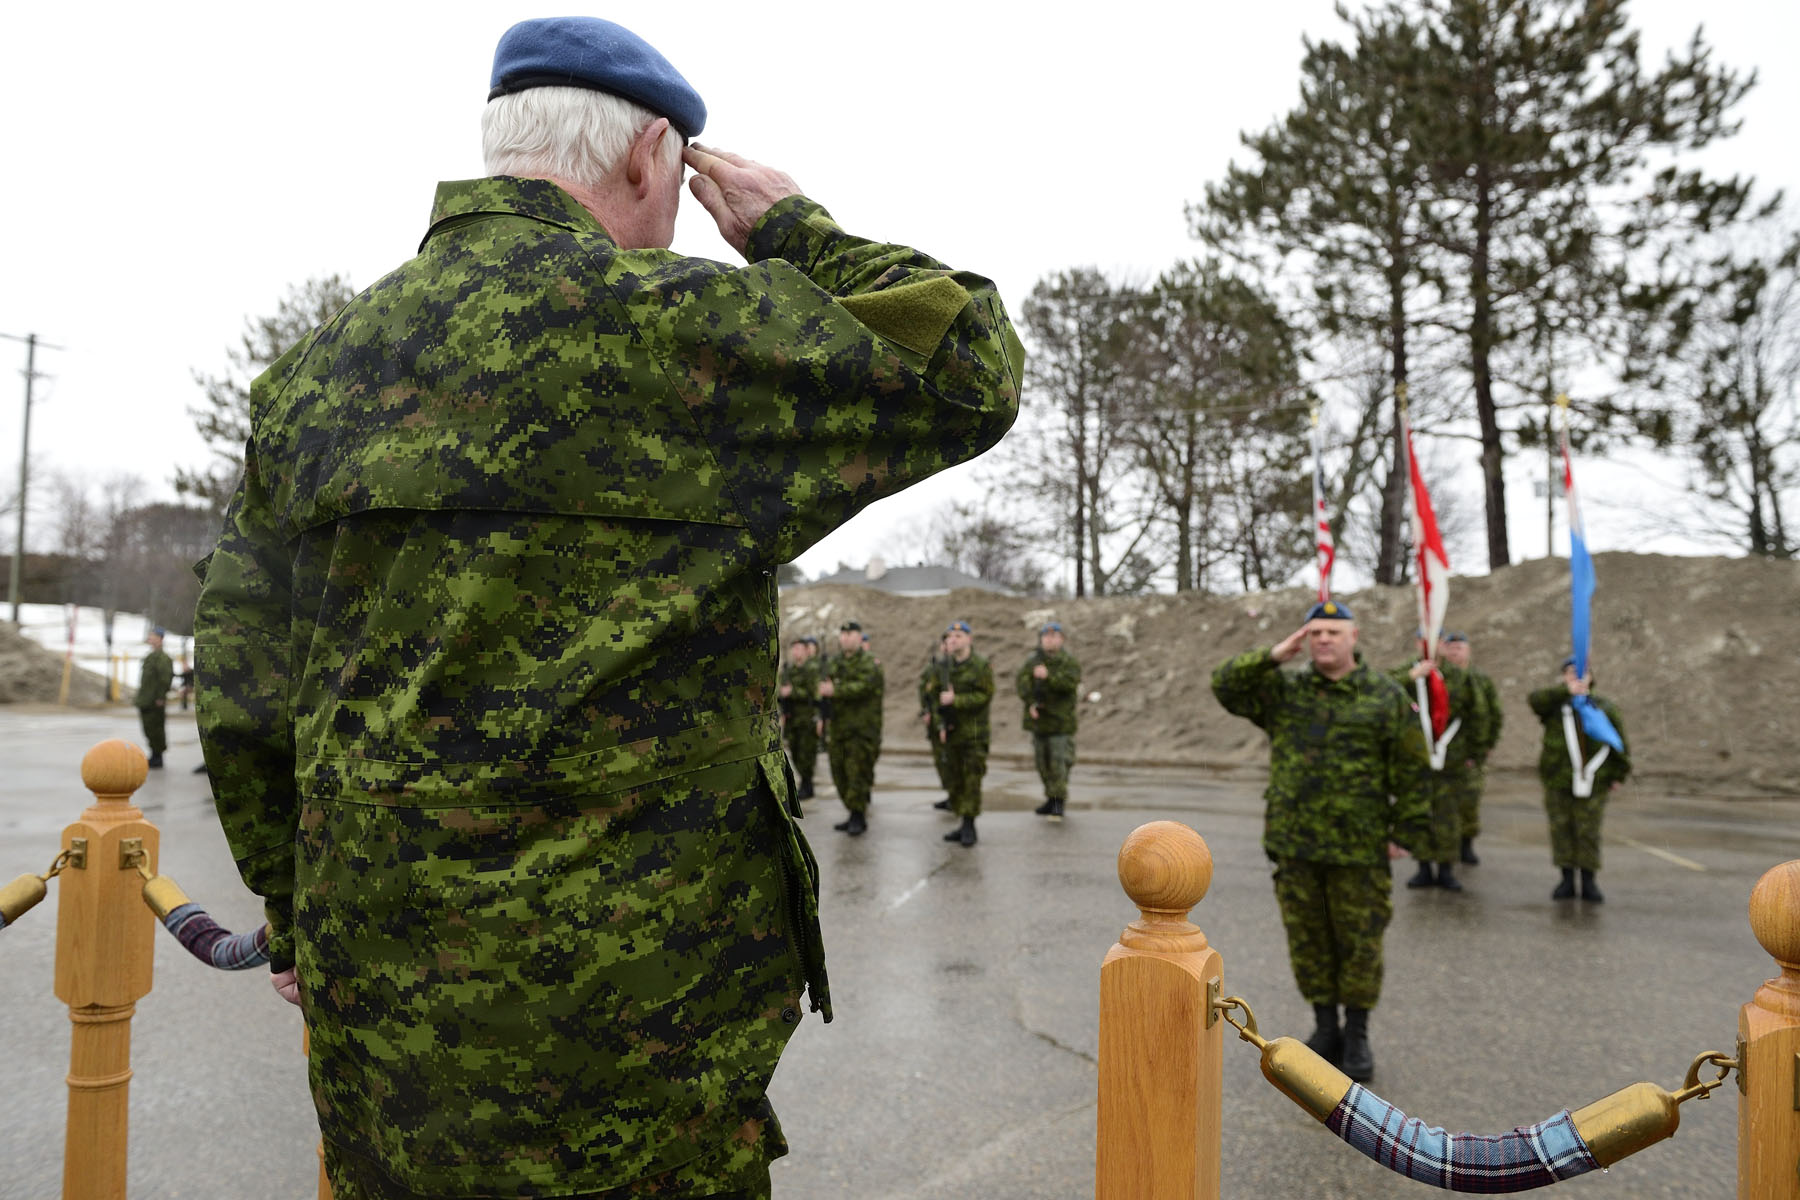 The Governor General inspected the guard of honour. 22 Wing/CFB North Bay is home of the Canadian Air Defence Sector (CADS).